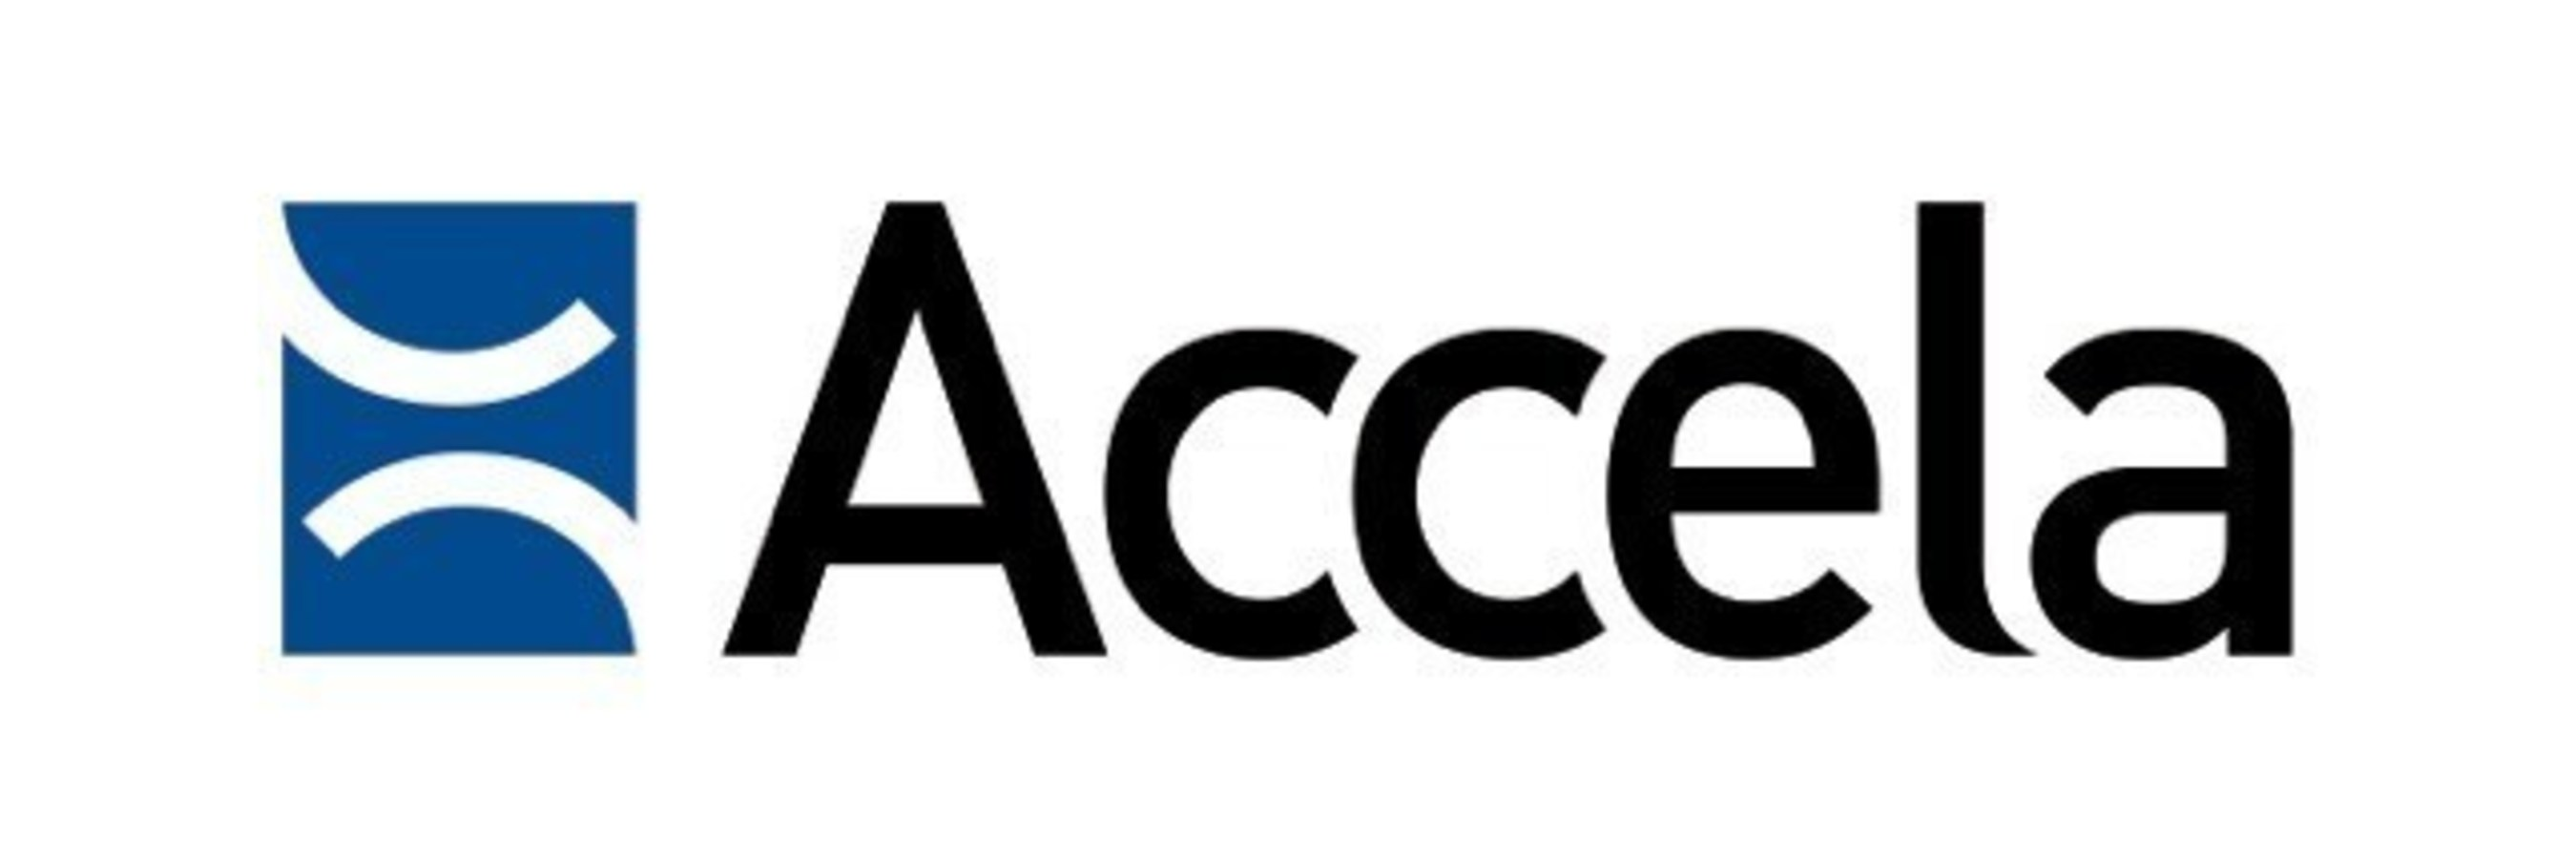 Accela Launches Contractor Central to Speed the Contractor-Agency Process for Construction Professionals